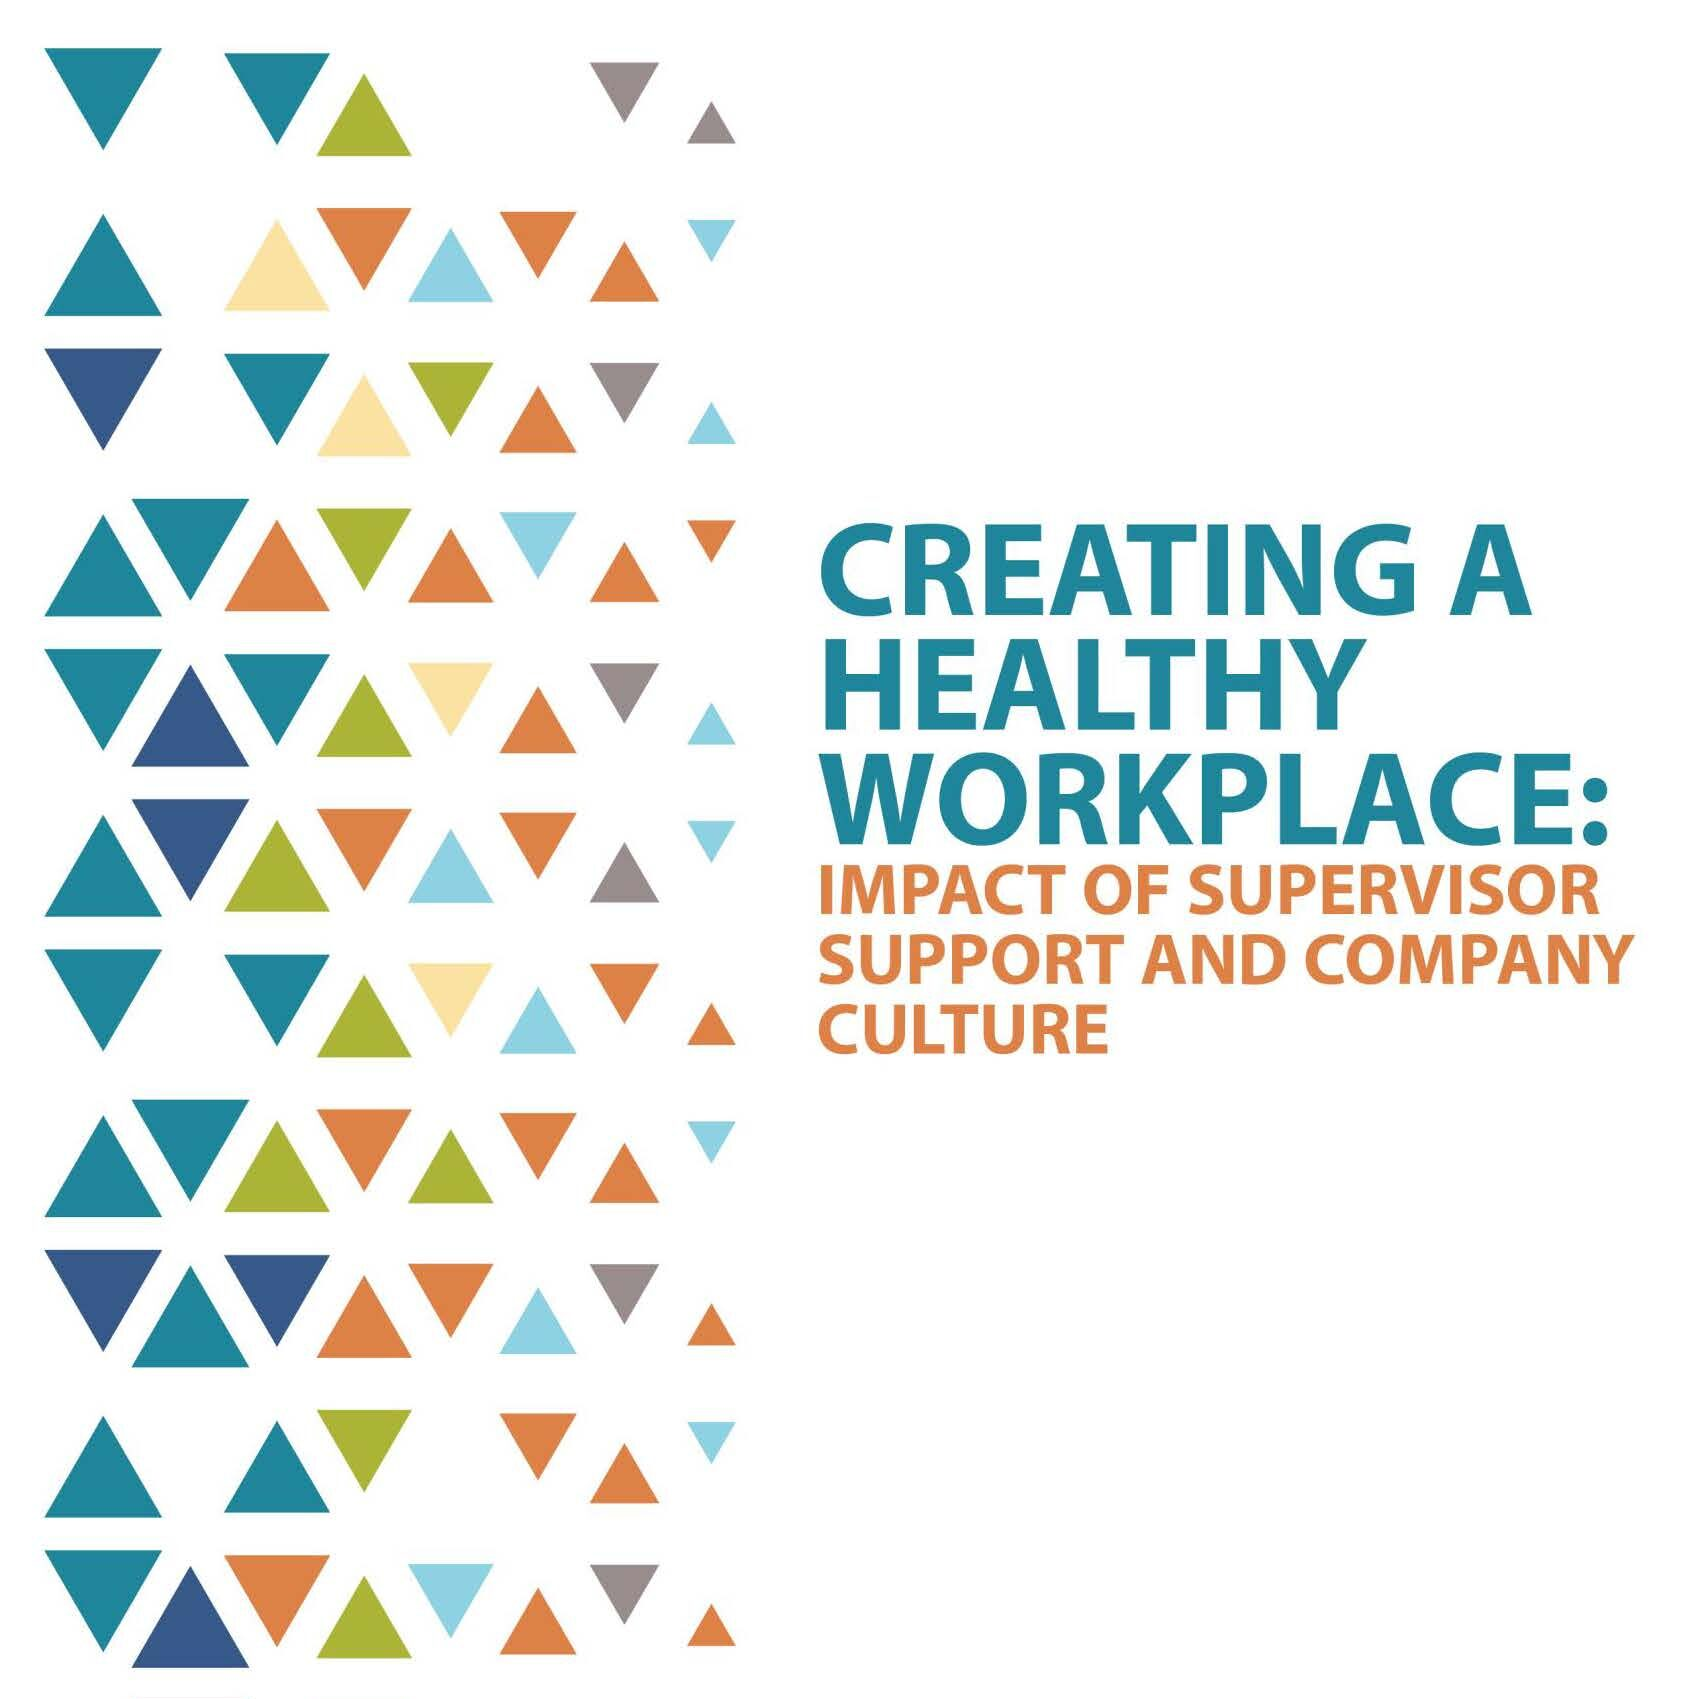 Creating A Healthy Workplace 2020